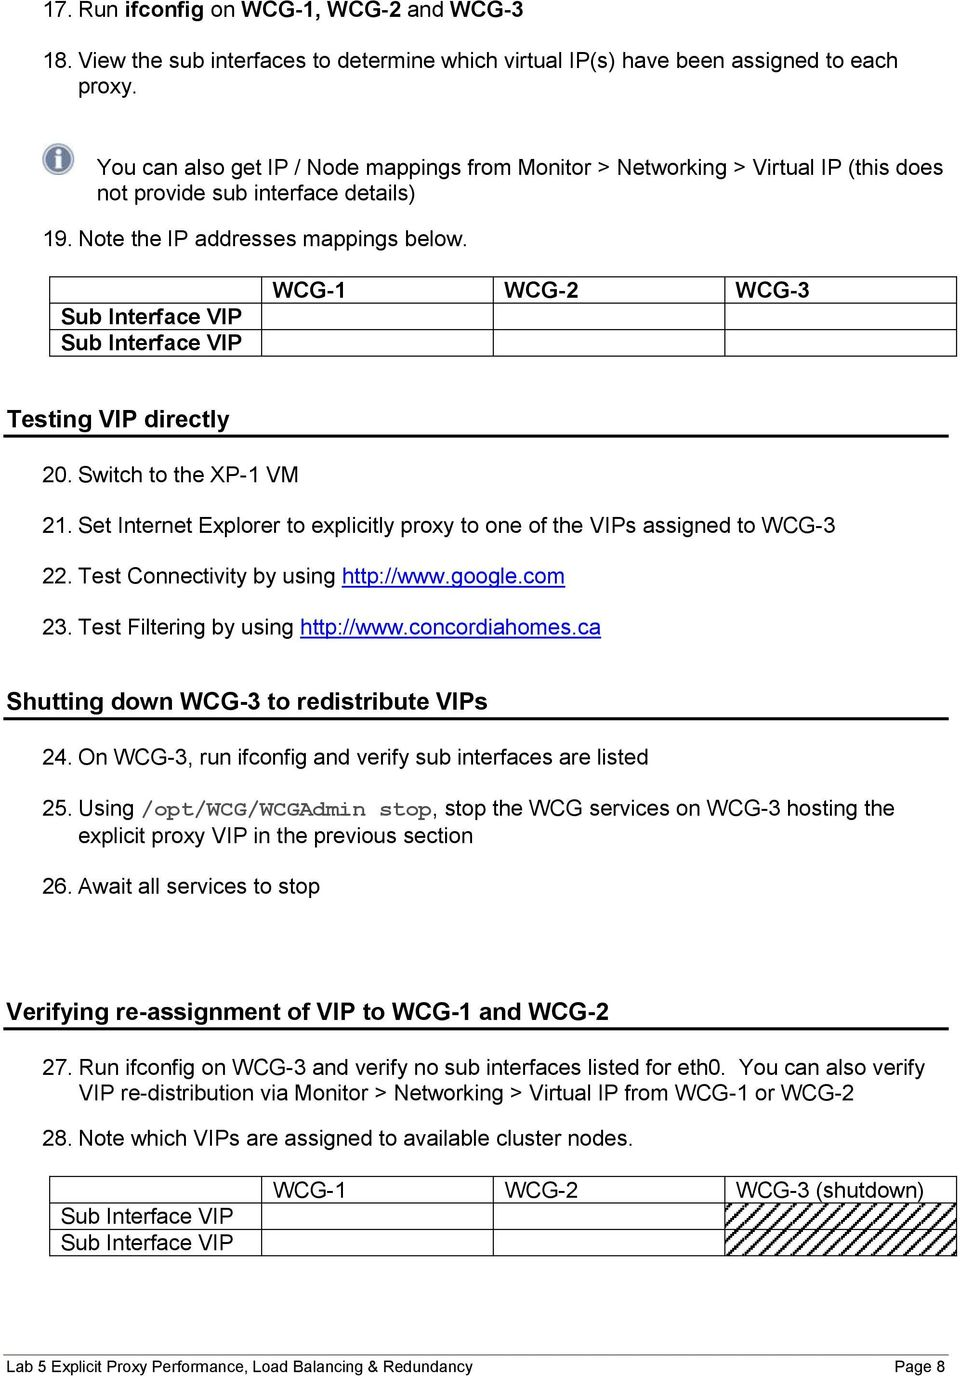 Sub Interface VIP Sub Interface VIP WCG-1 WCG-2 WCG-3 Testing VIP directly 20. Switch to the XP-1 VM 21. Set Internet Explorer to explicitly proxy to one of the VIPs assigned to WCG-3 22.